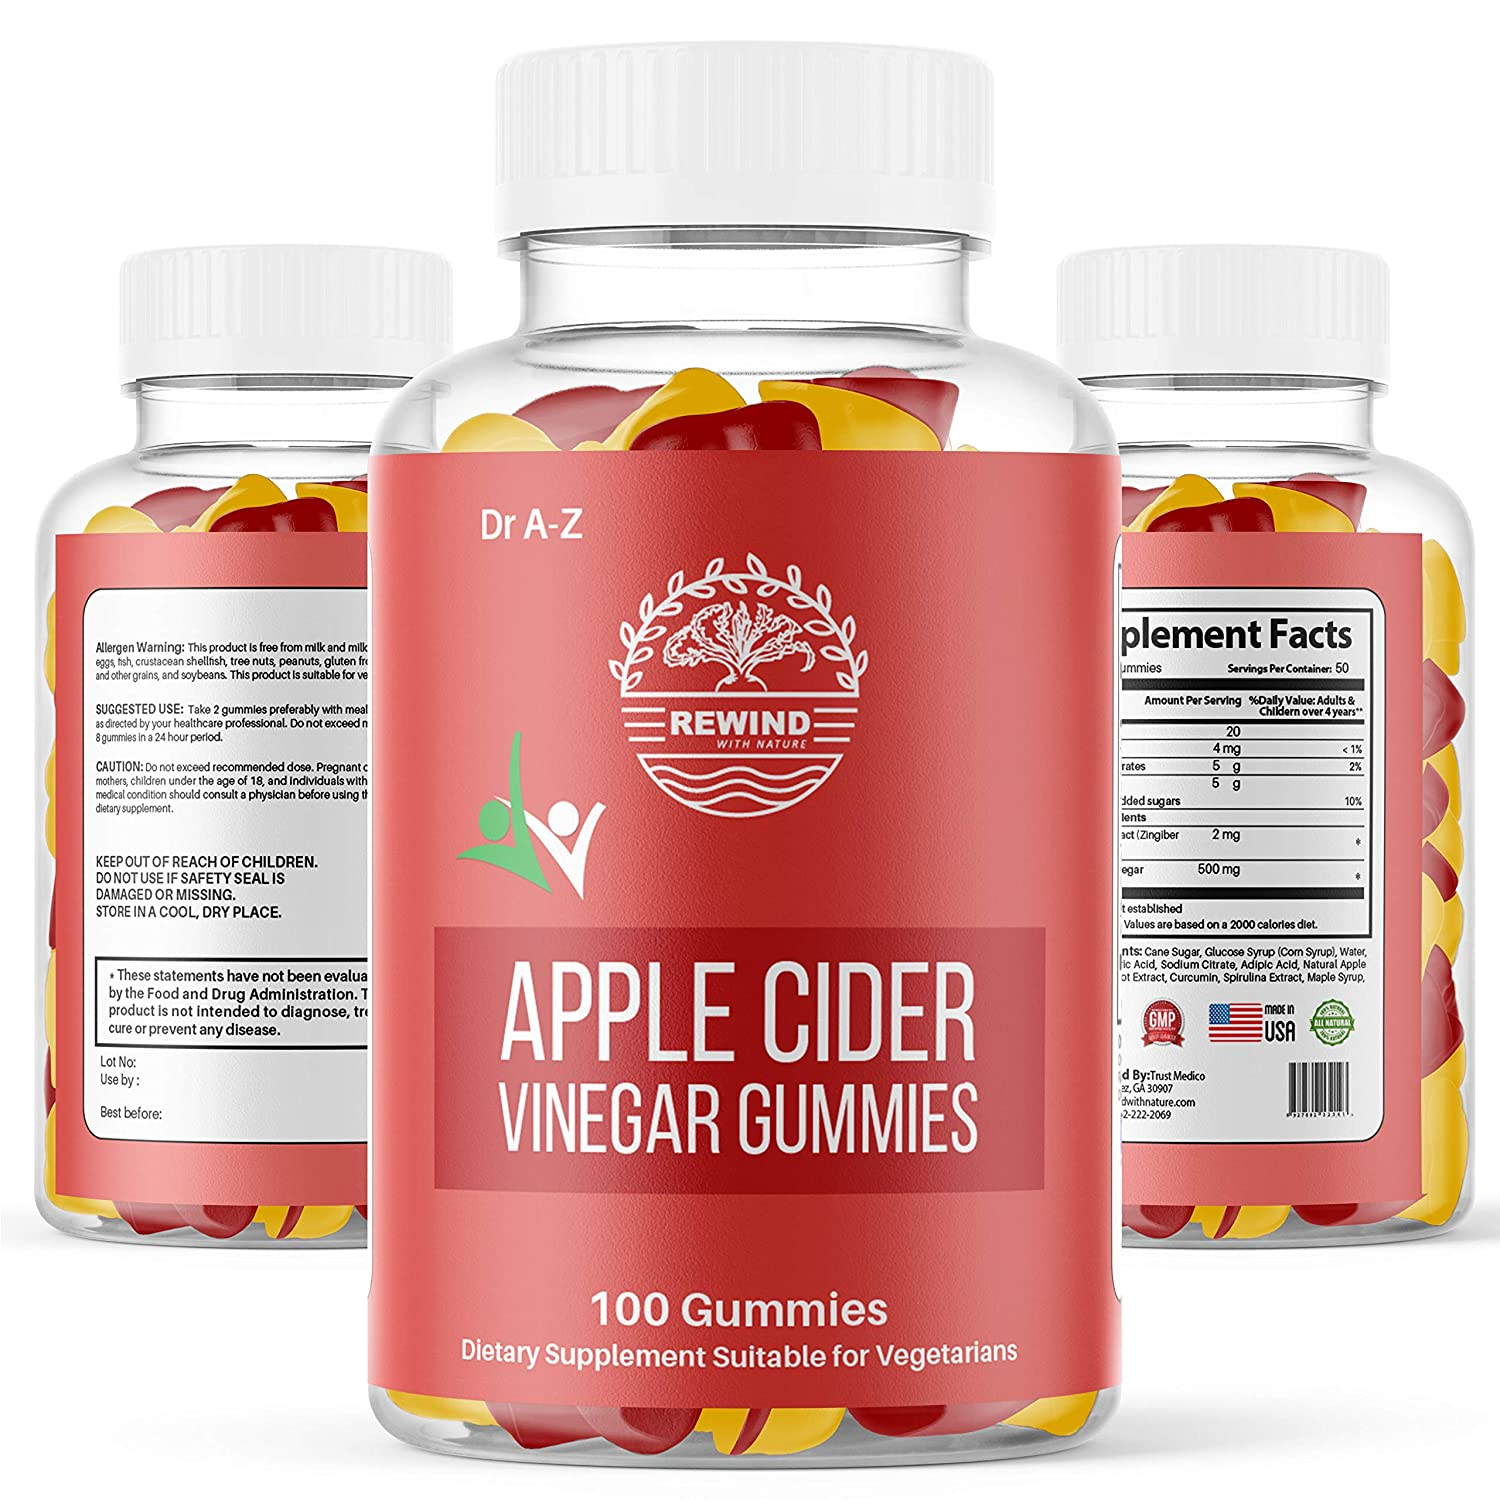 Apple Cider Vinegar Gummies, Pack 100% Nature's Pure Raw Organic Unfiltered ACV Gummies For Weight Loss Detox, Cleanse With The Mother ACV Gummy, No Harsh Taste Liquid, Capsule, Pills ACV Dr A-Z